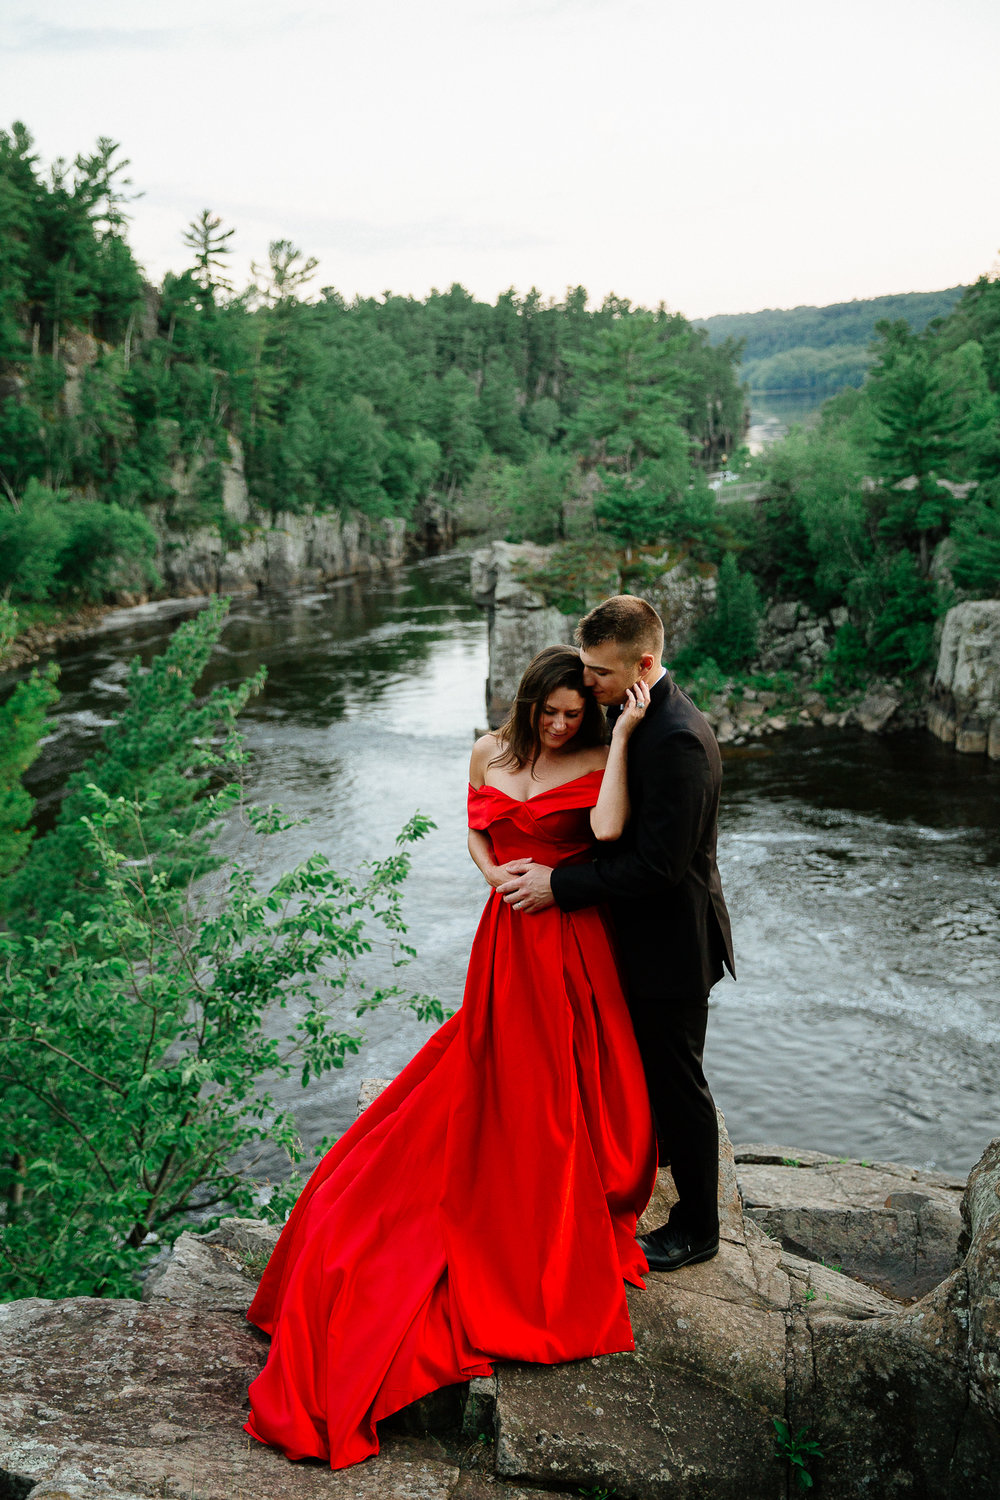 Jen_Montgomery_Photography_Allison&David_Couple_FB-229.jpg